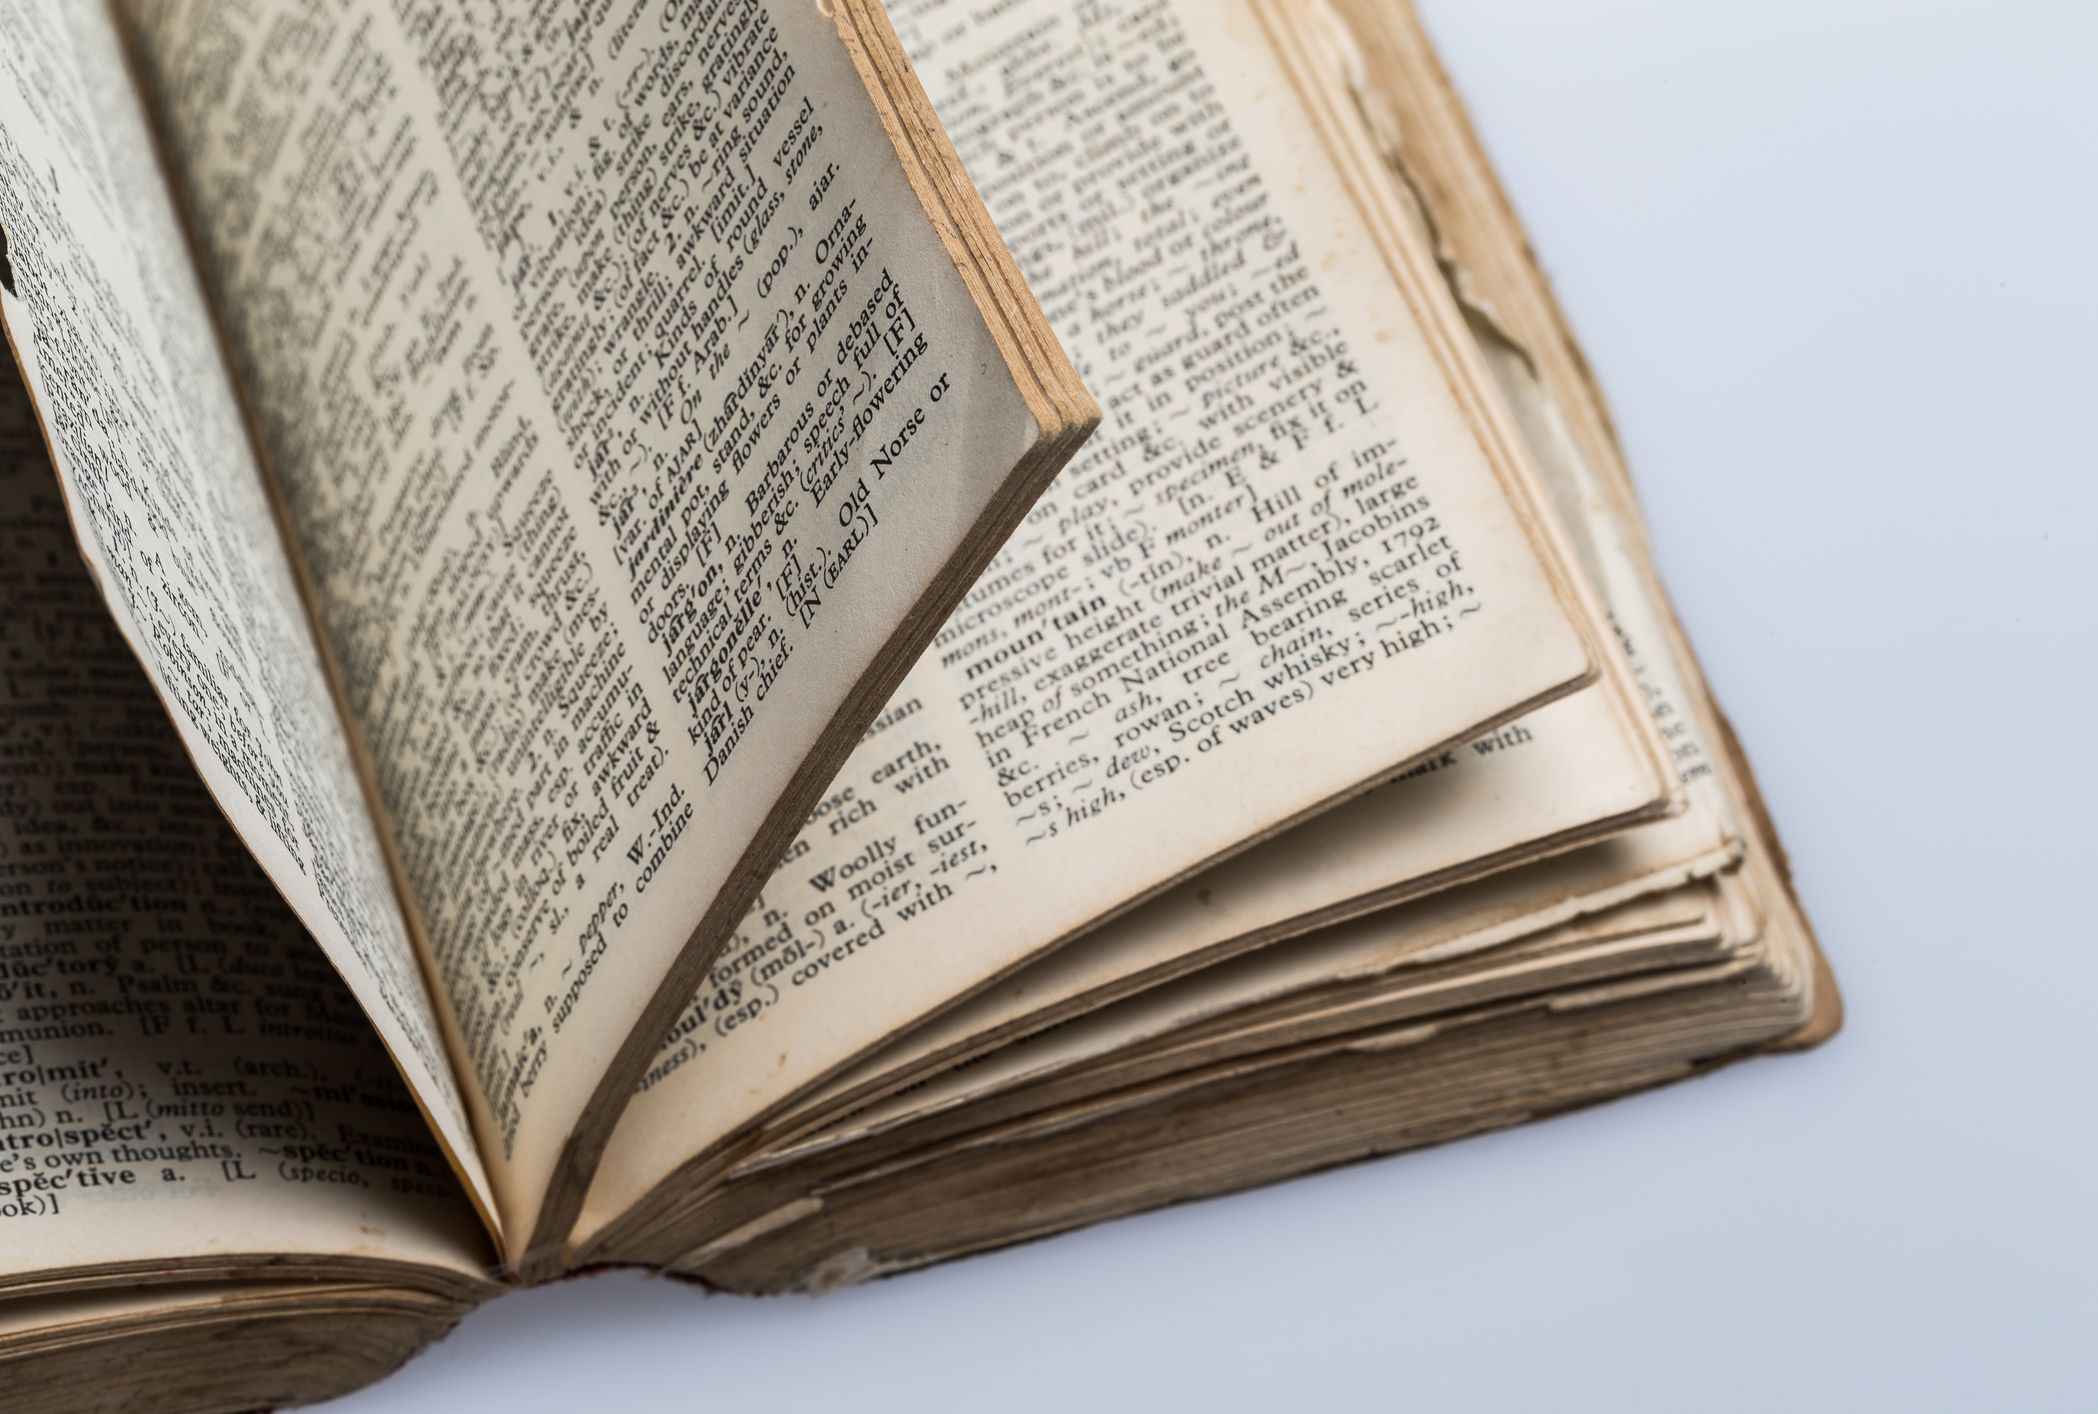 13 Facts About the Oxford English Dictionary | Mental Floss